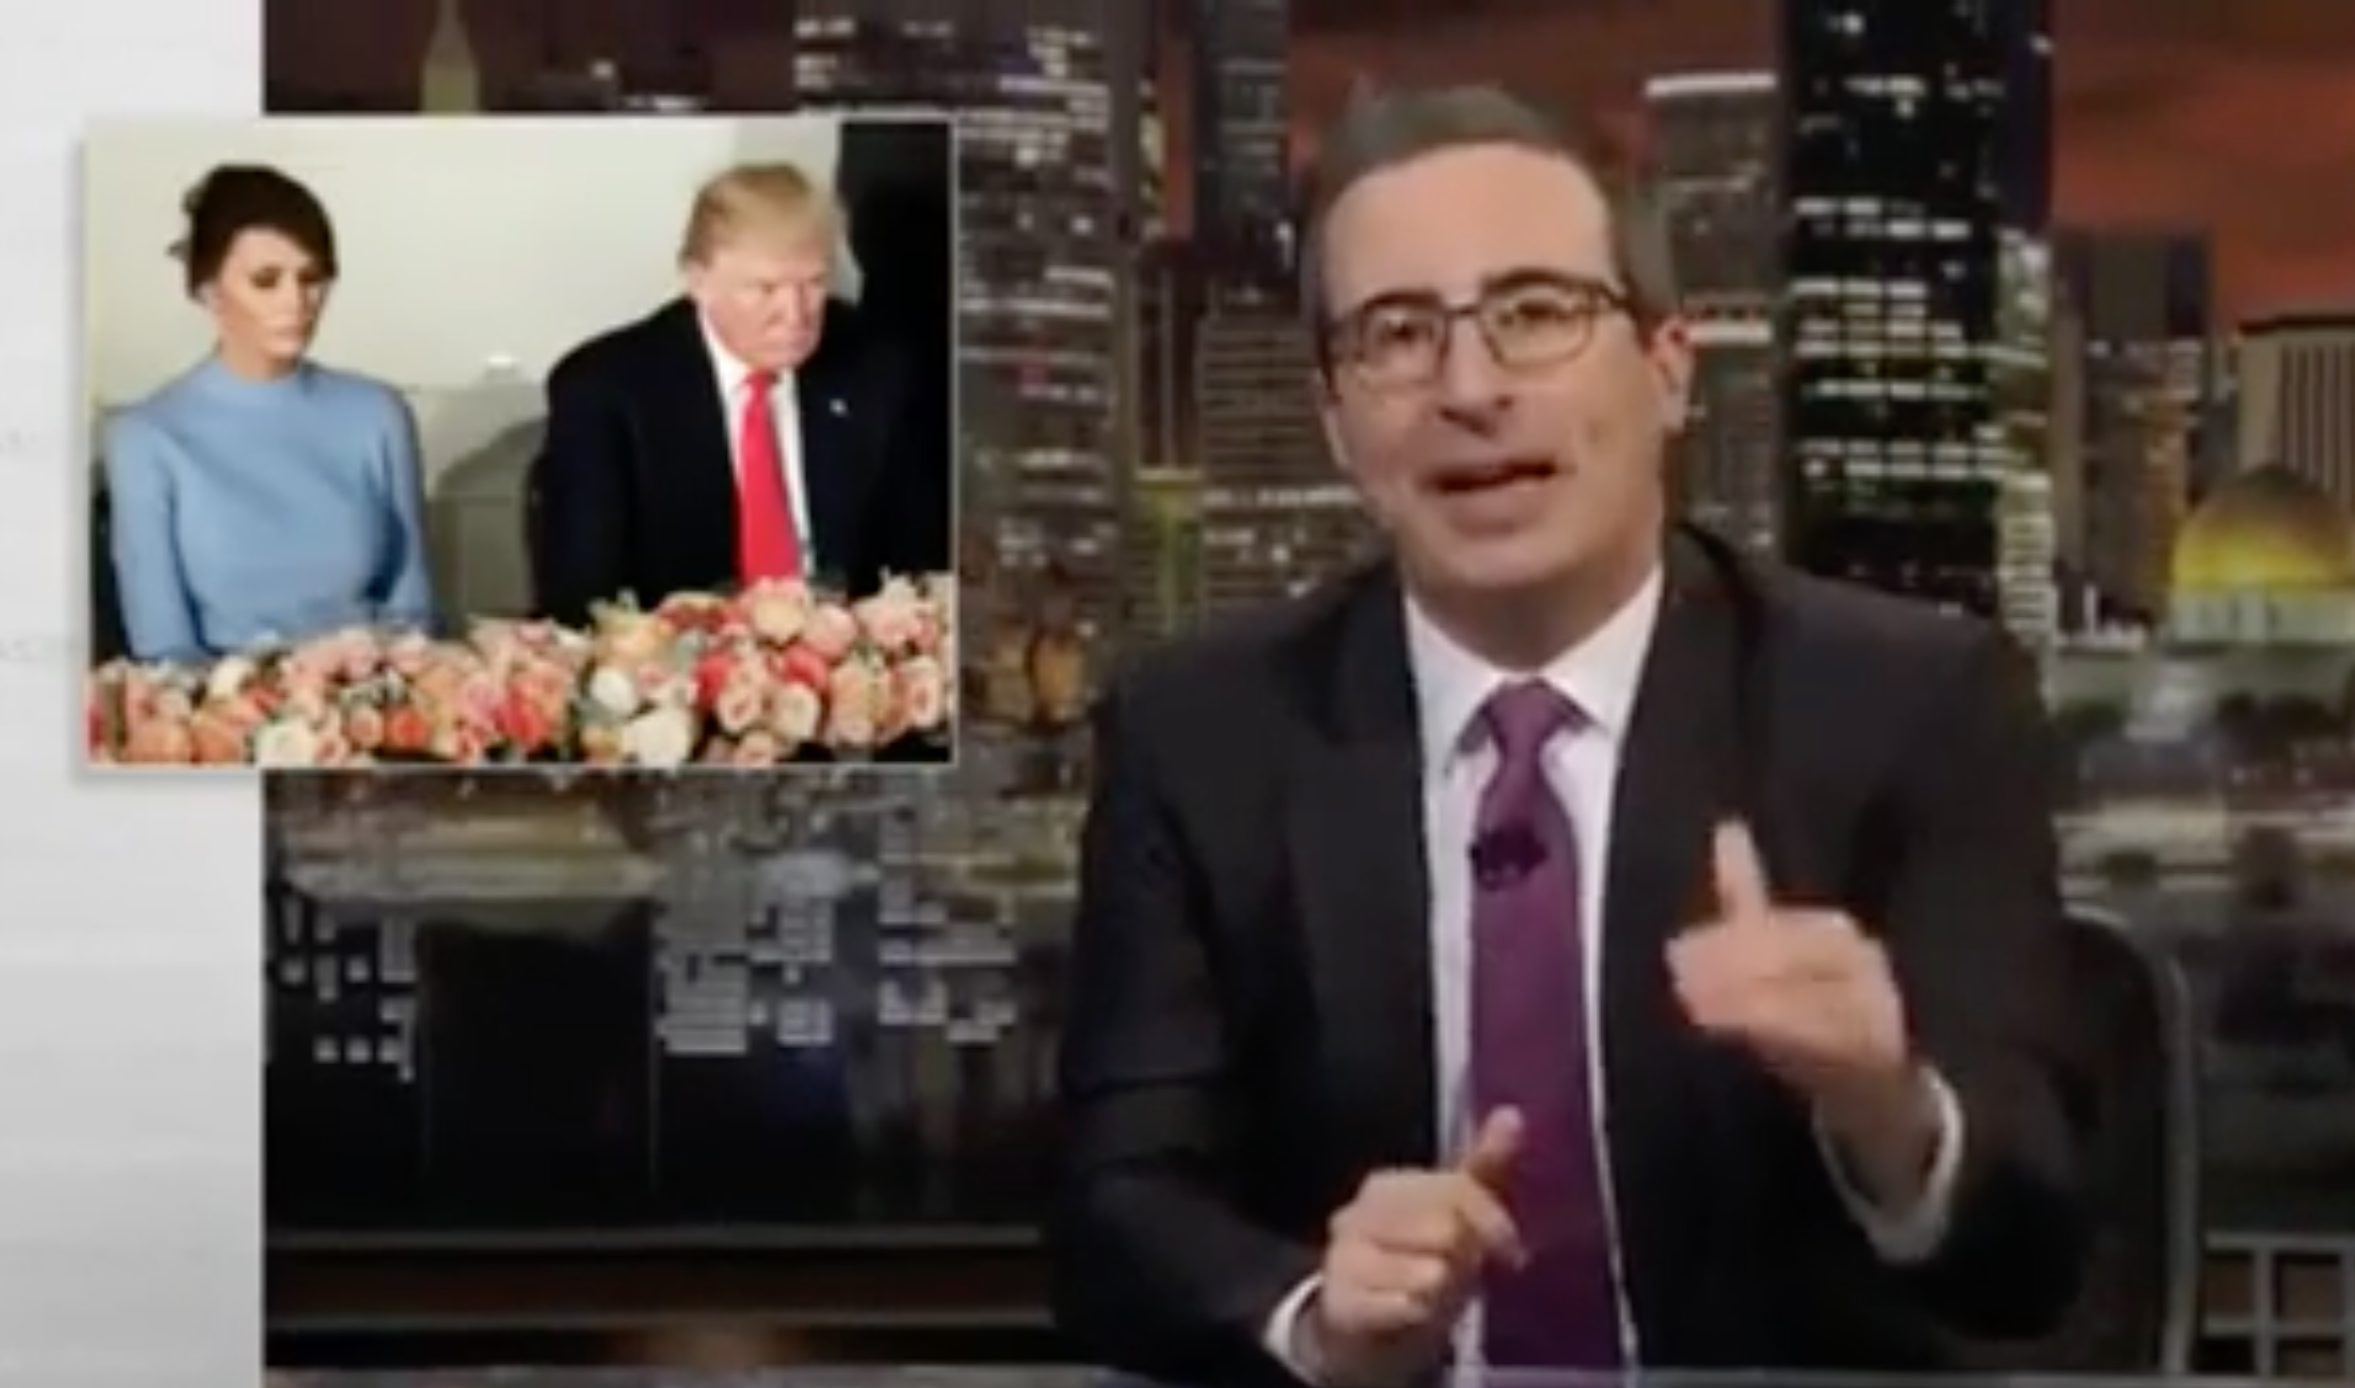 John Oliver Hits First Lady in Rant on Trump and Greenland: 'Greenland is Icy, Distant, and Semi-Autonomous' … Like Melania